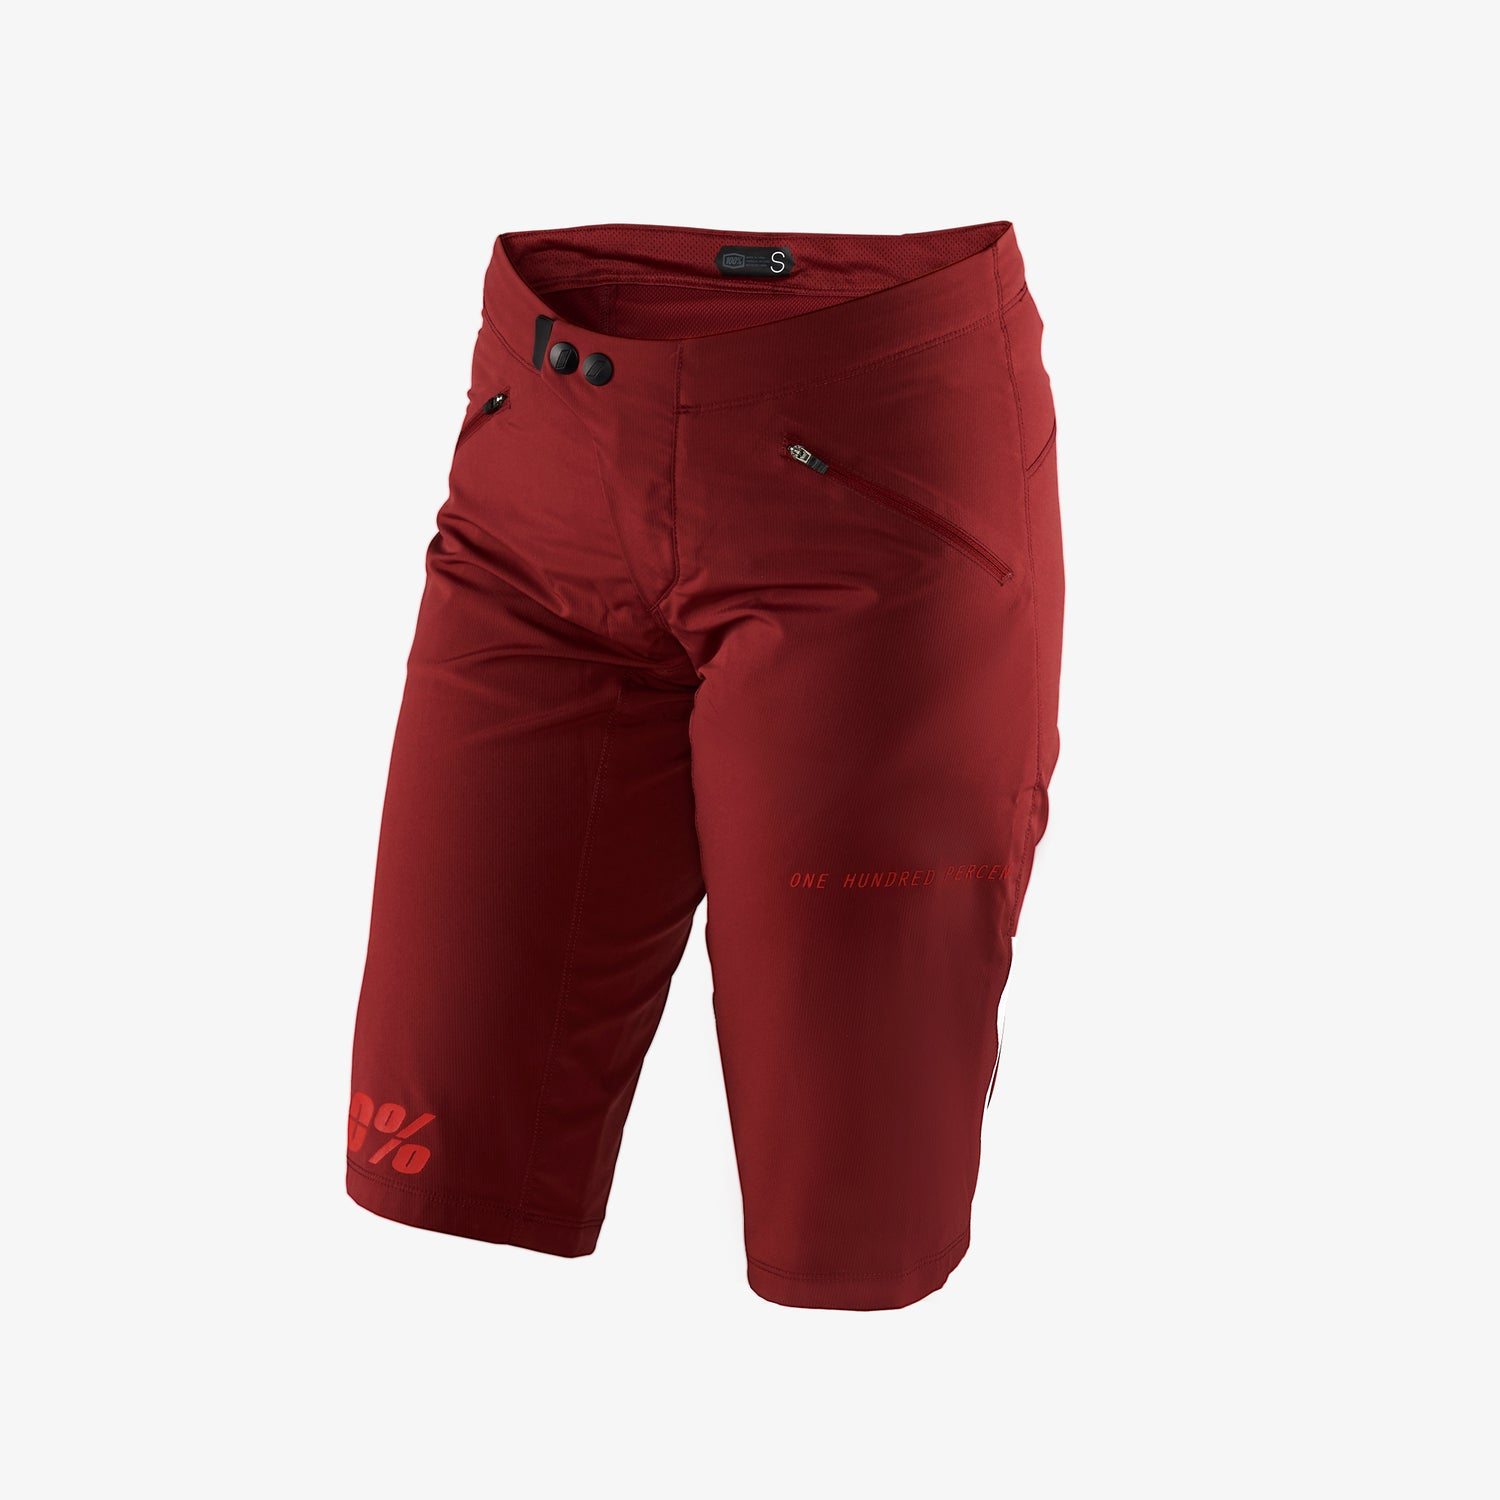 RIDECAMP Shorts - Women's - Brick